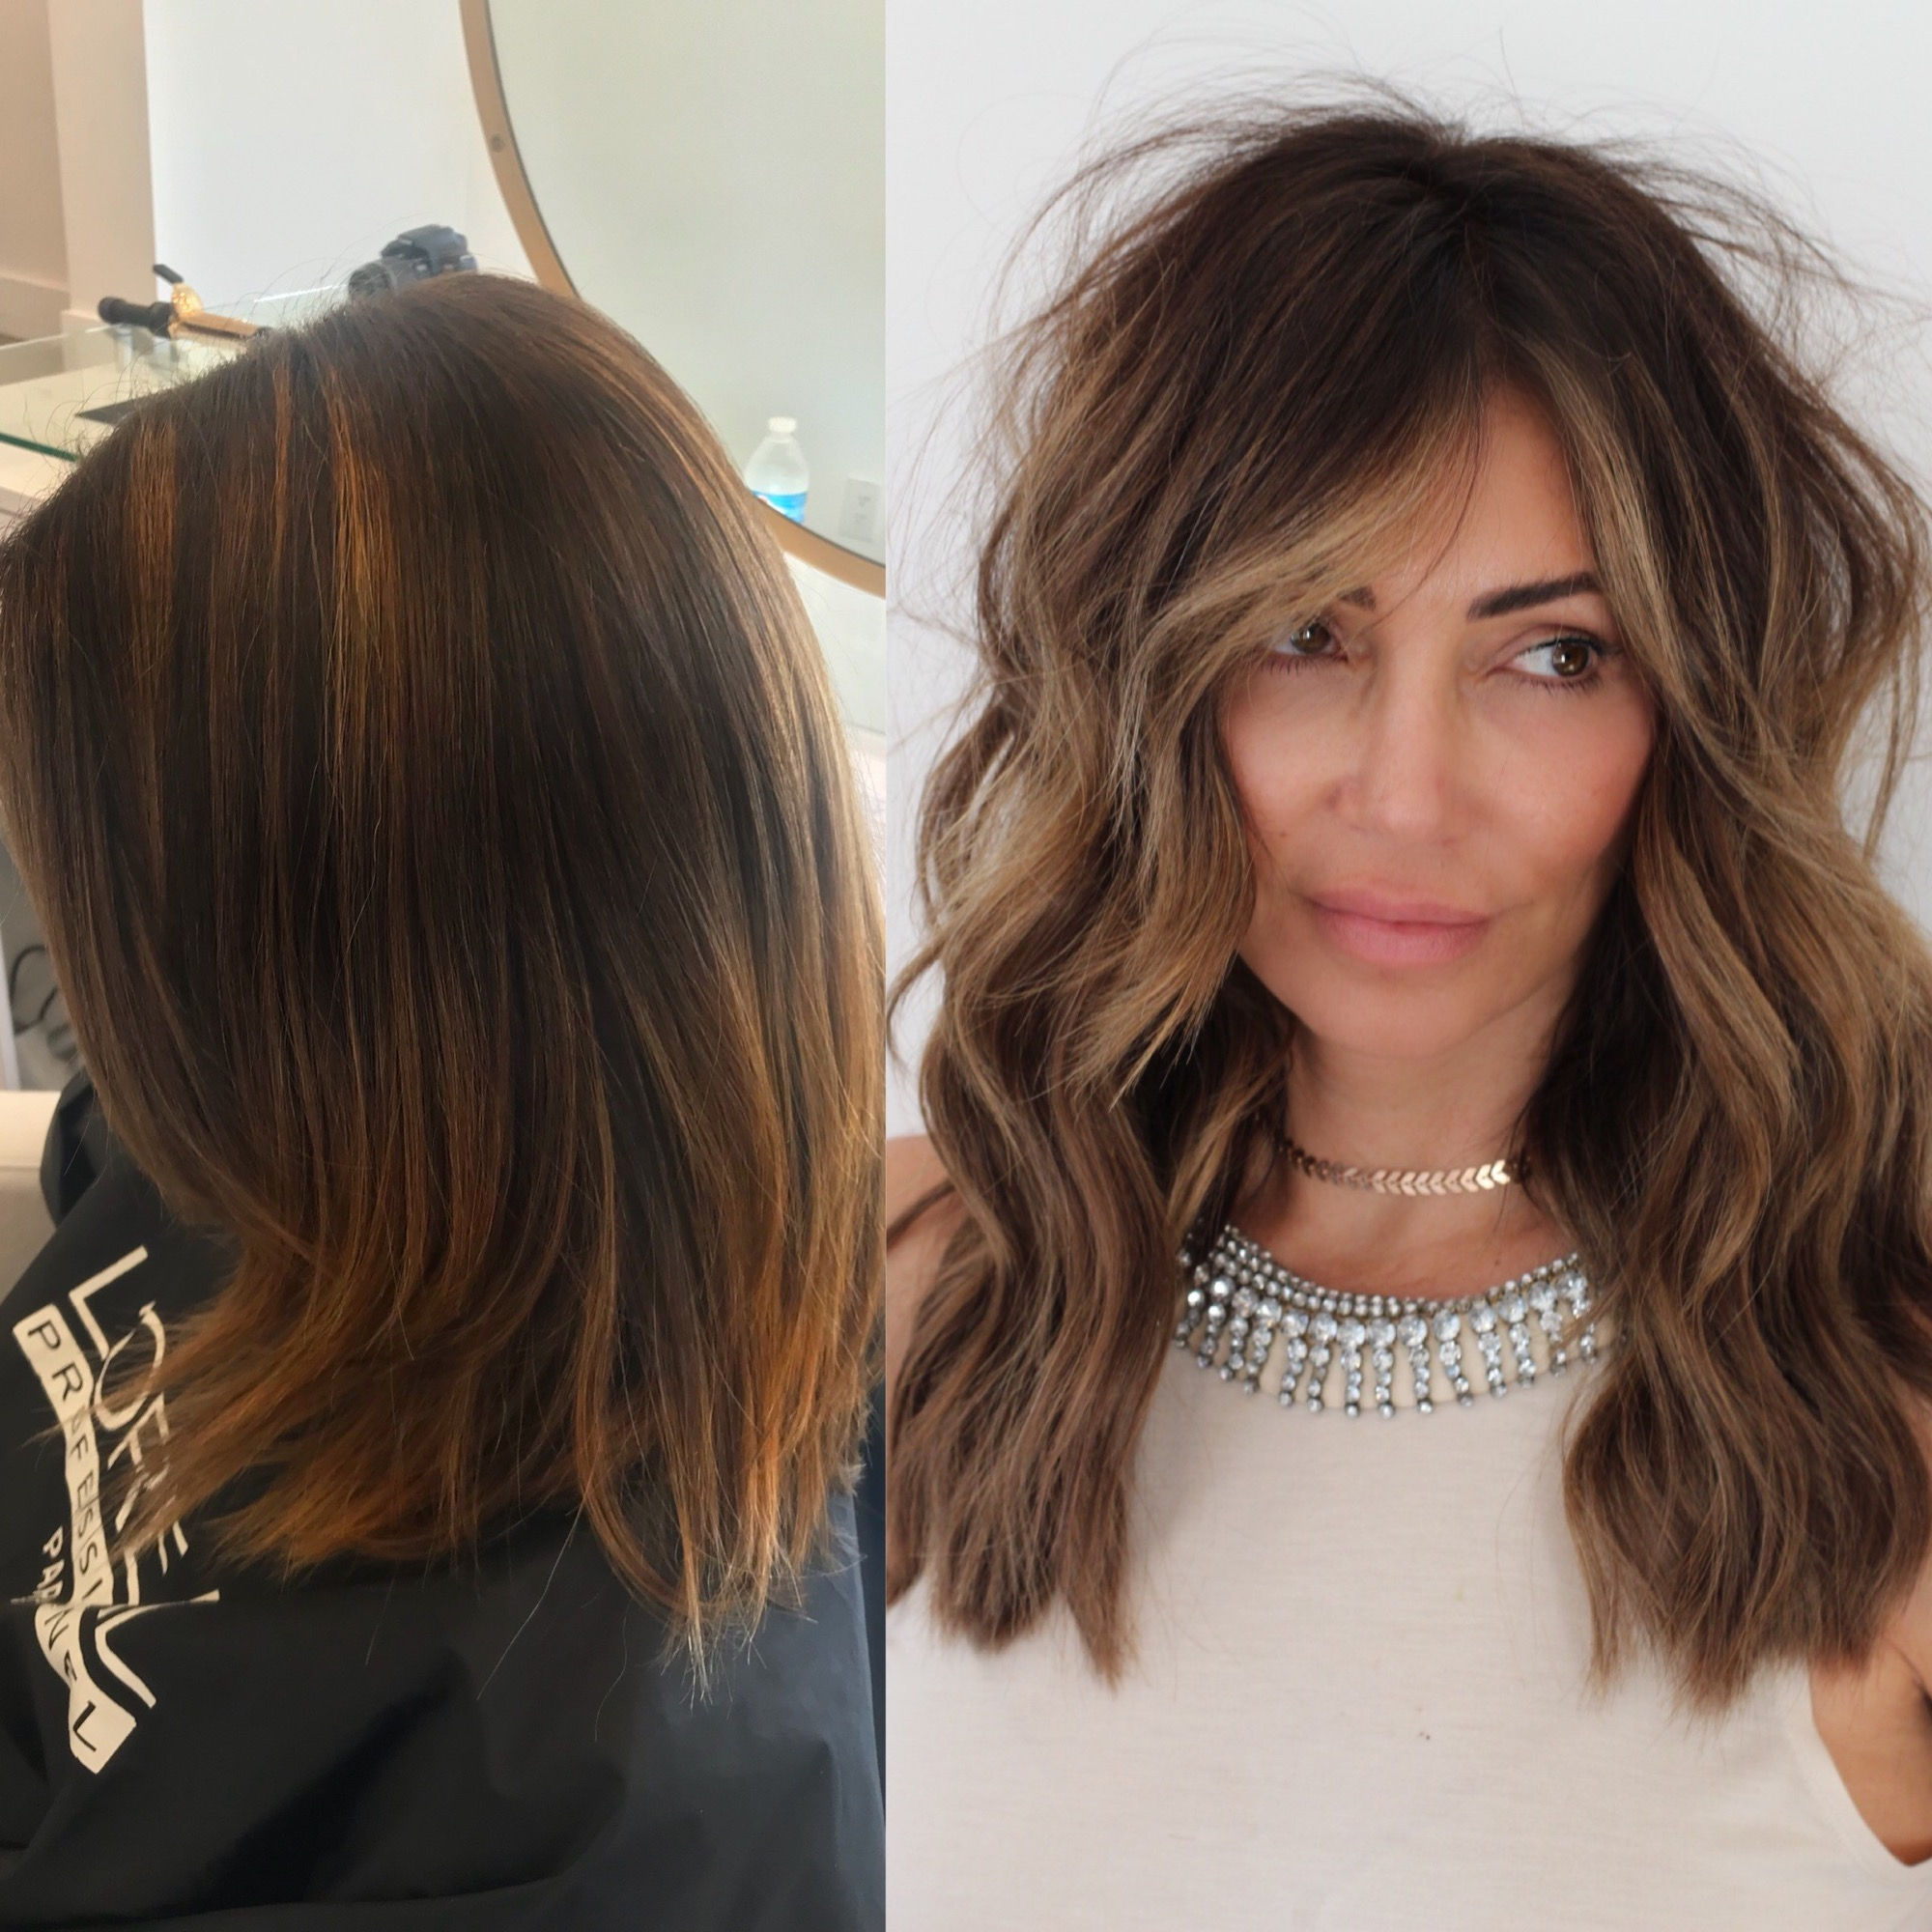 Nbr hair extensions archives dkw styling nbr hair extensions by valerie plunk nbr hair extensions by valerie plunk pmusecretfo Image collections